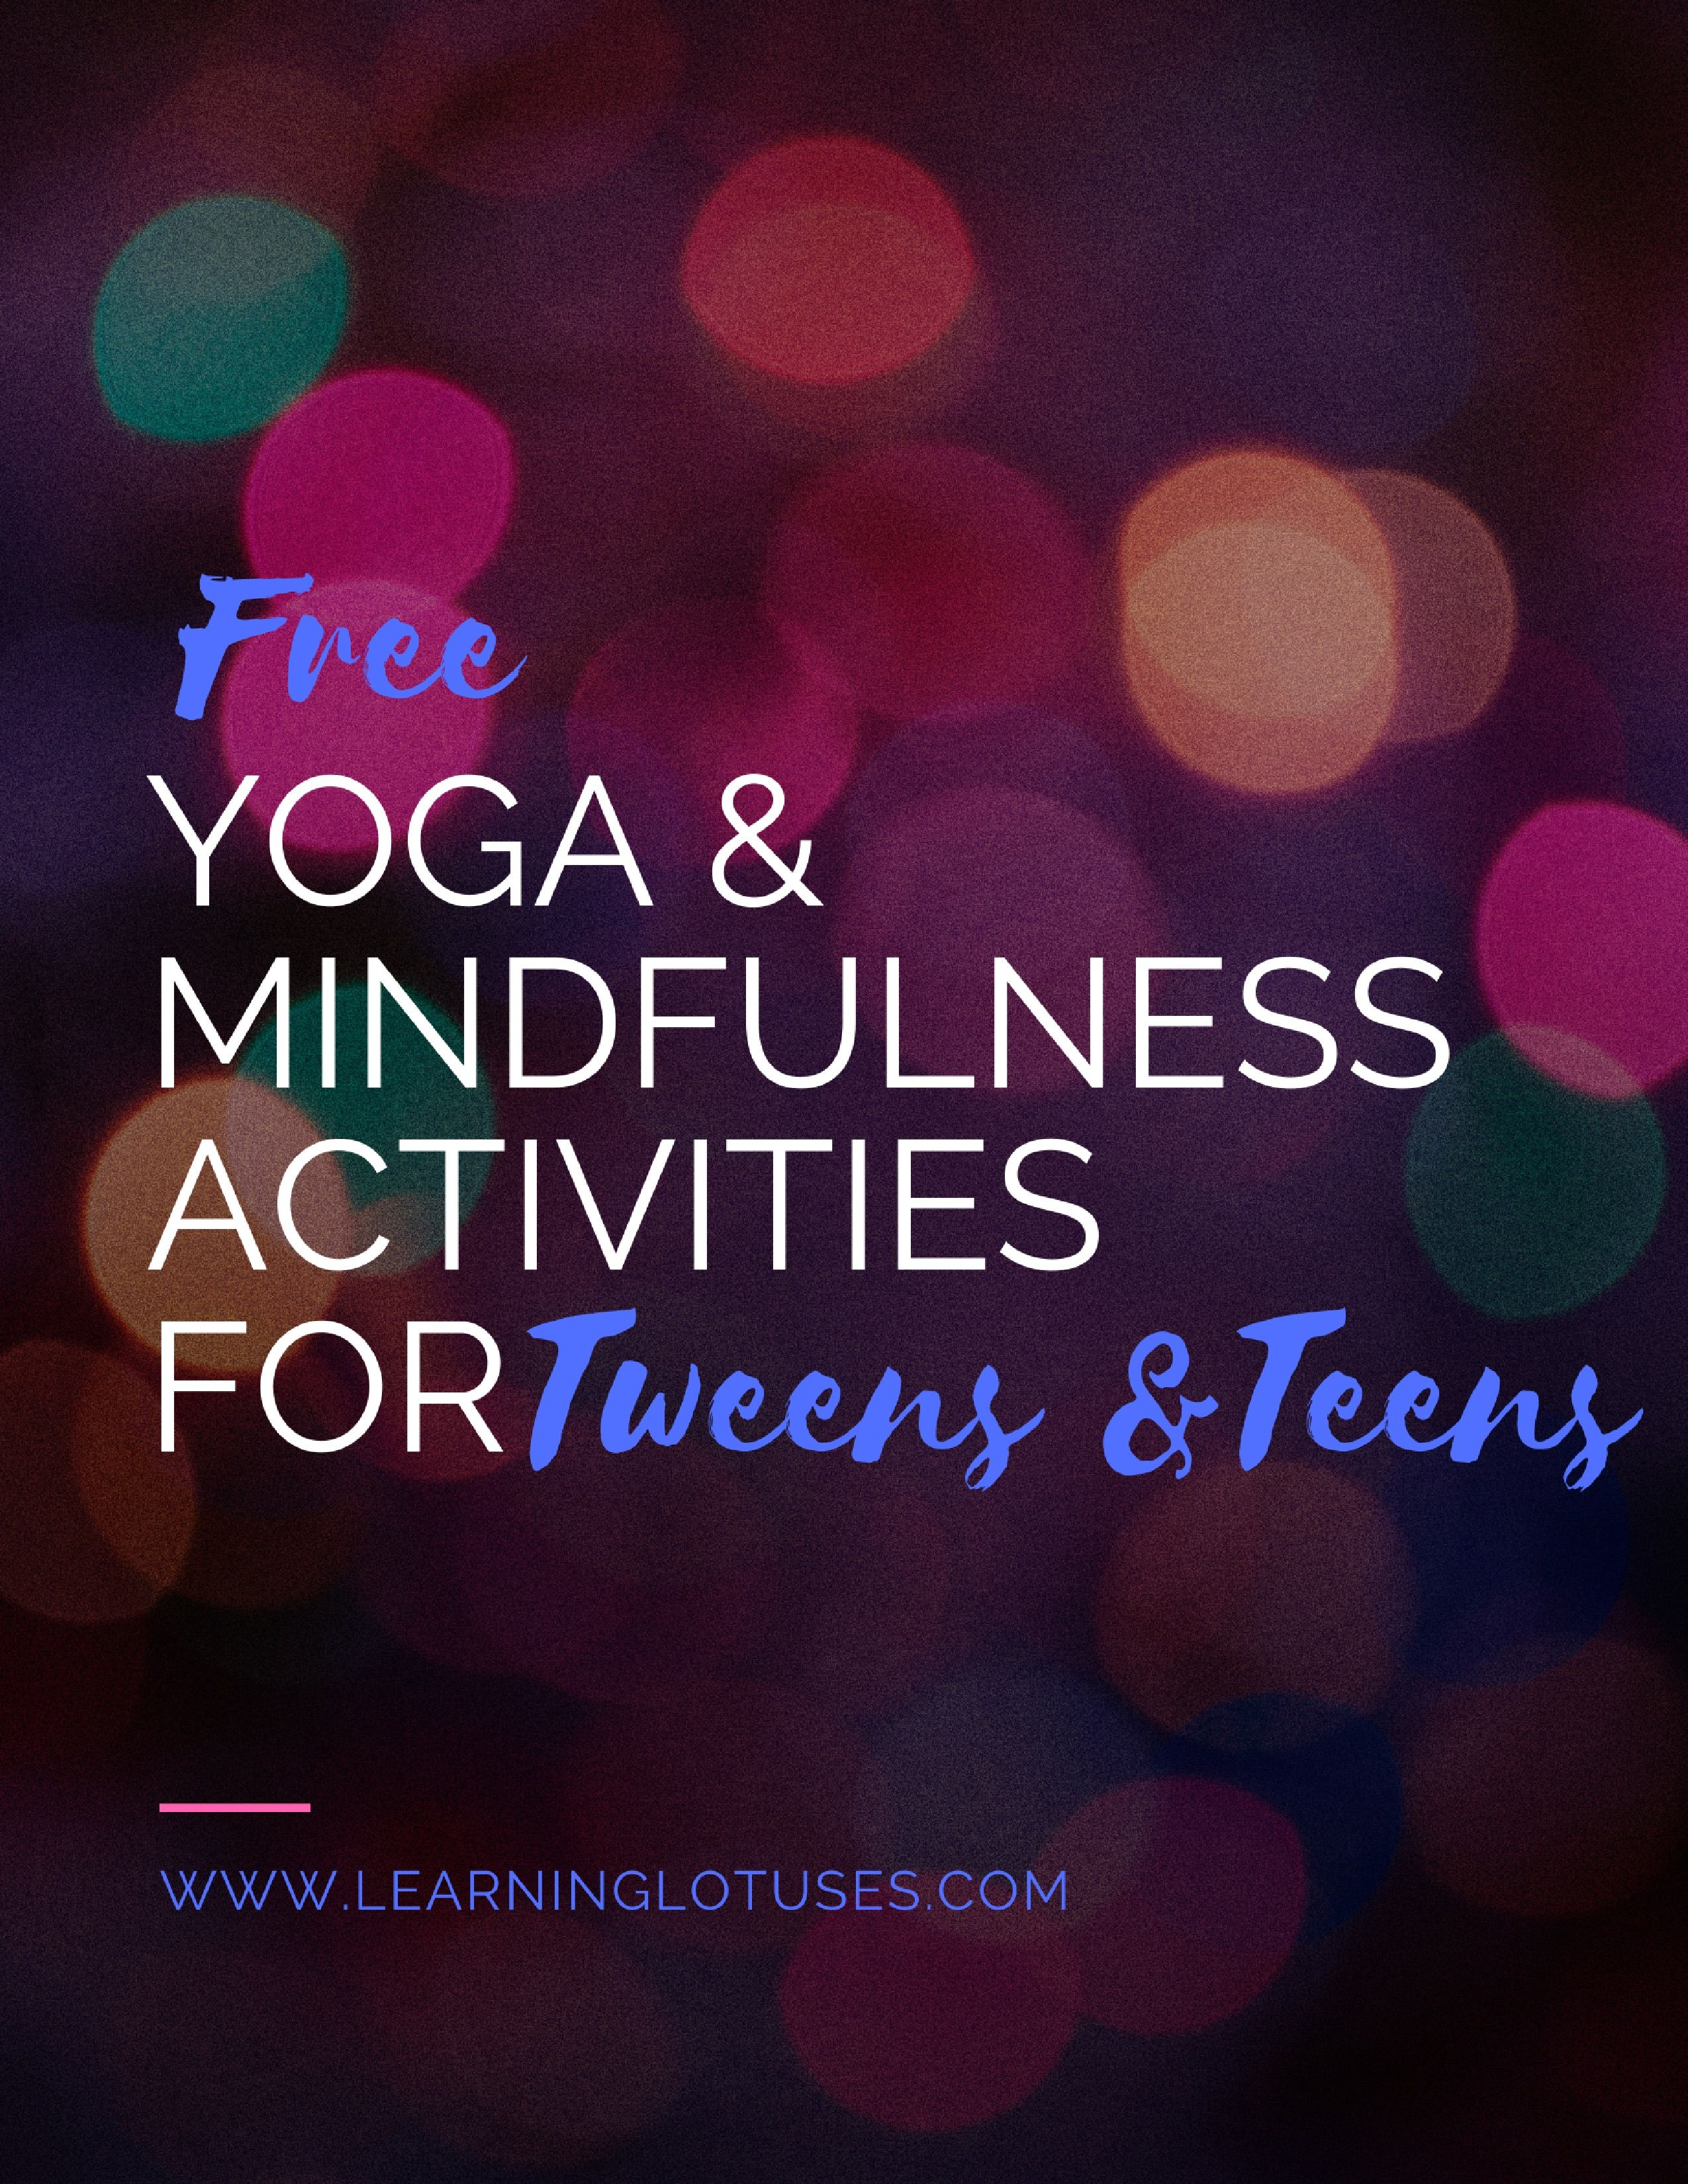 Resources From Learning Lotuses To Help You Practice Yoga And Mindfulness